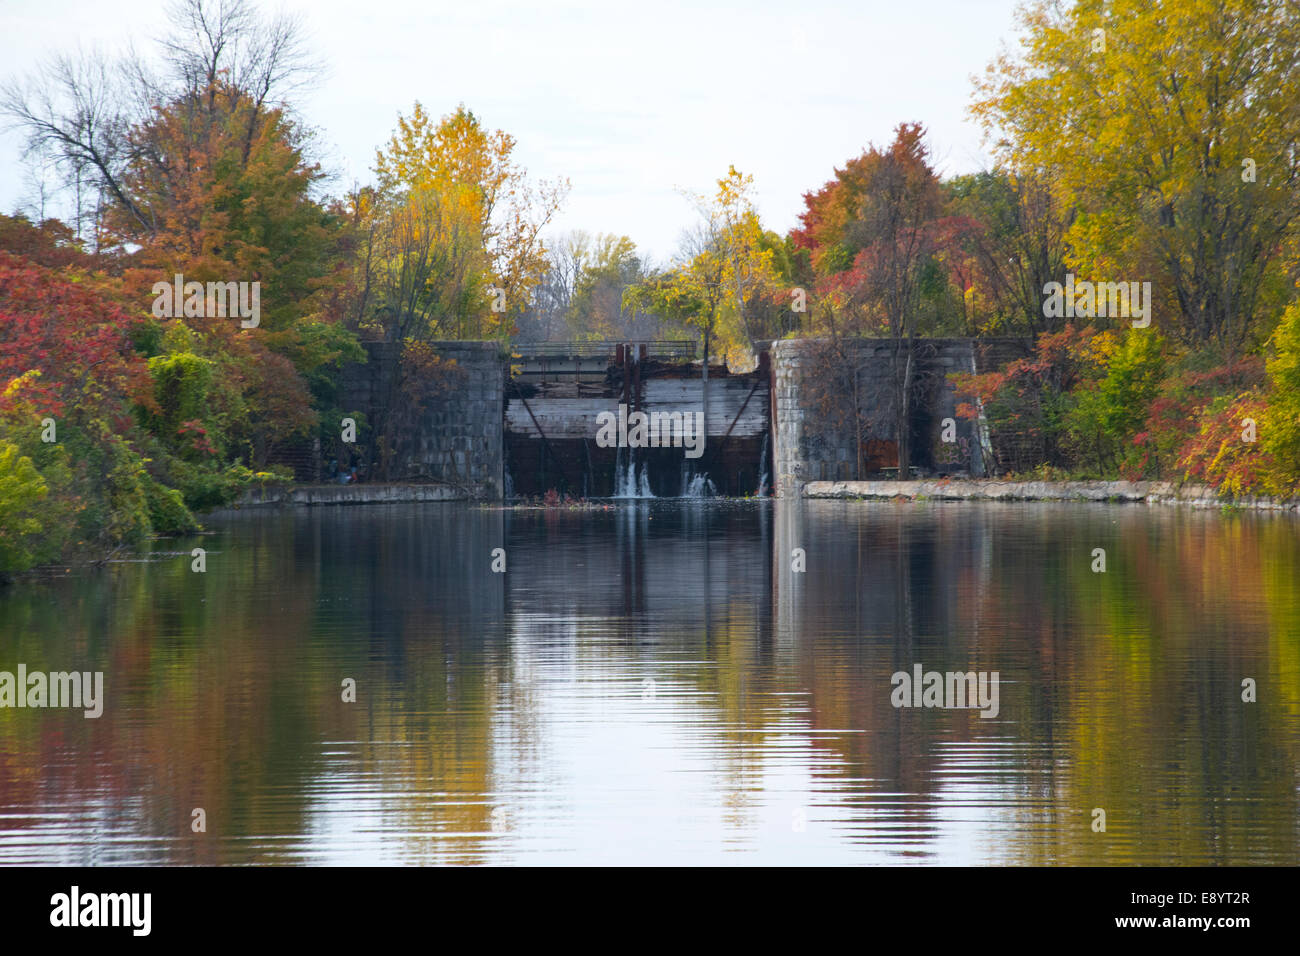 The first lock of the Soulange Canal. - Stock Image